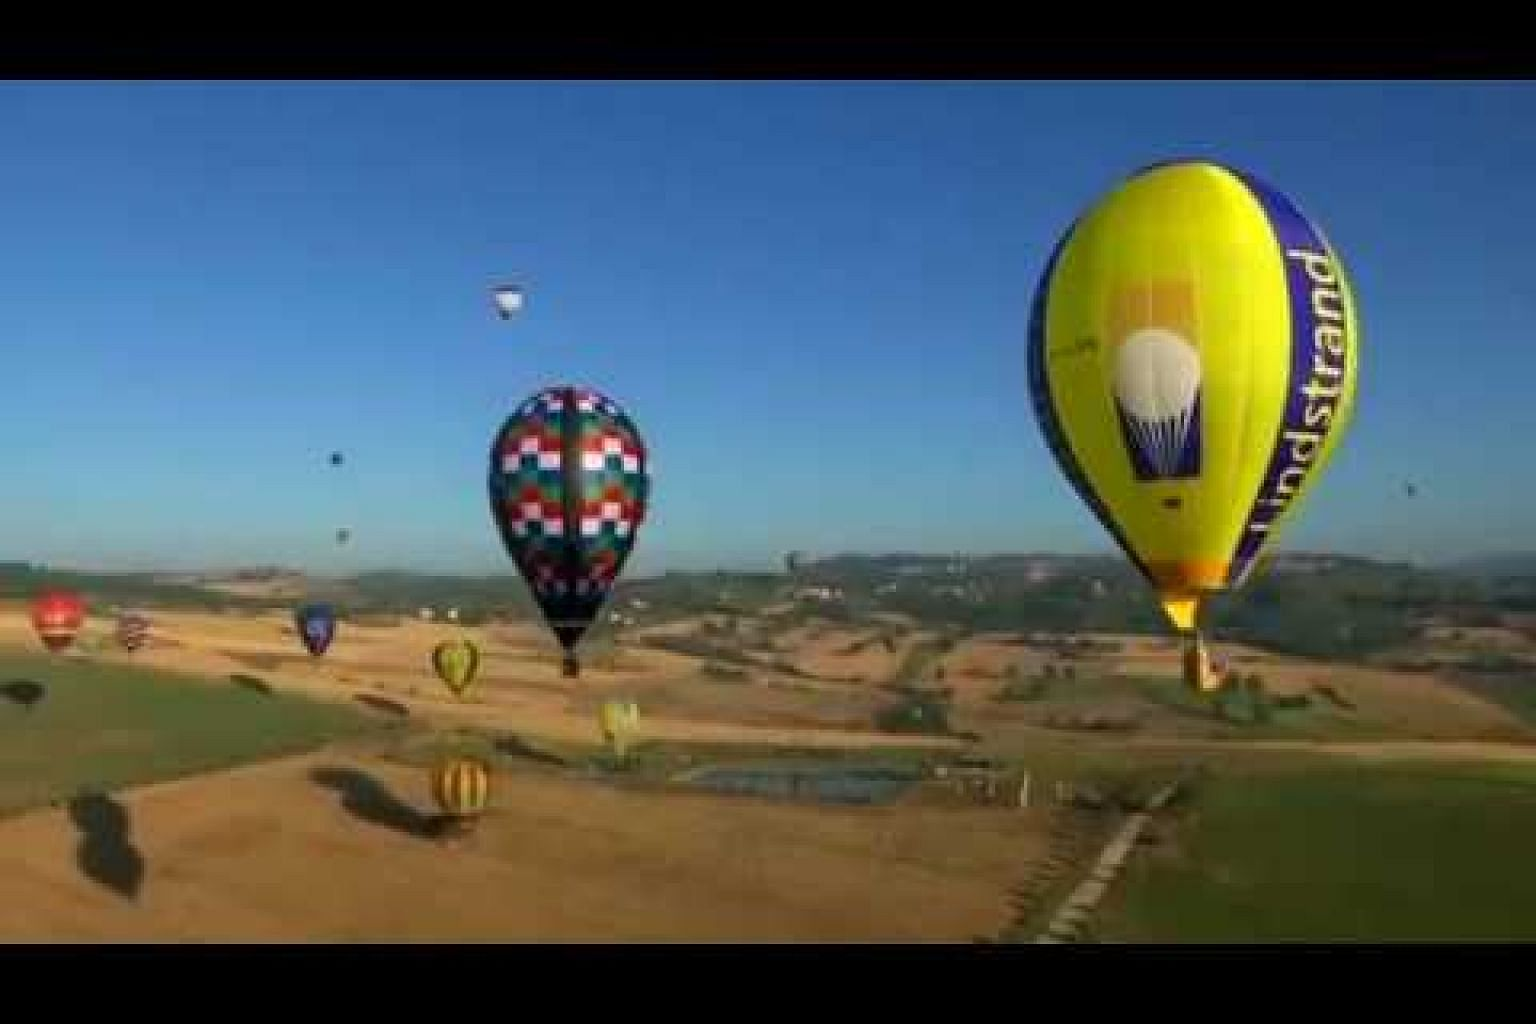 Balloonists take to the skies over Umbria's wine valley